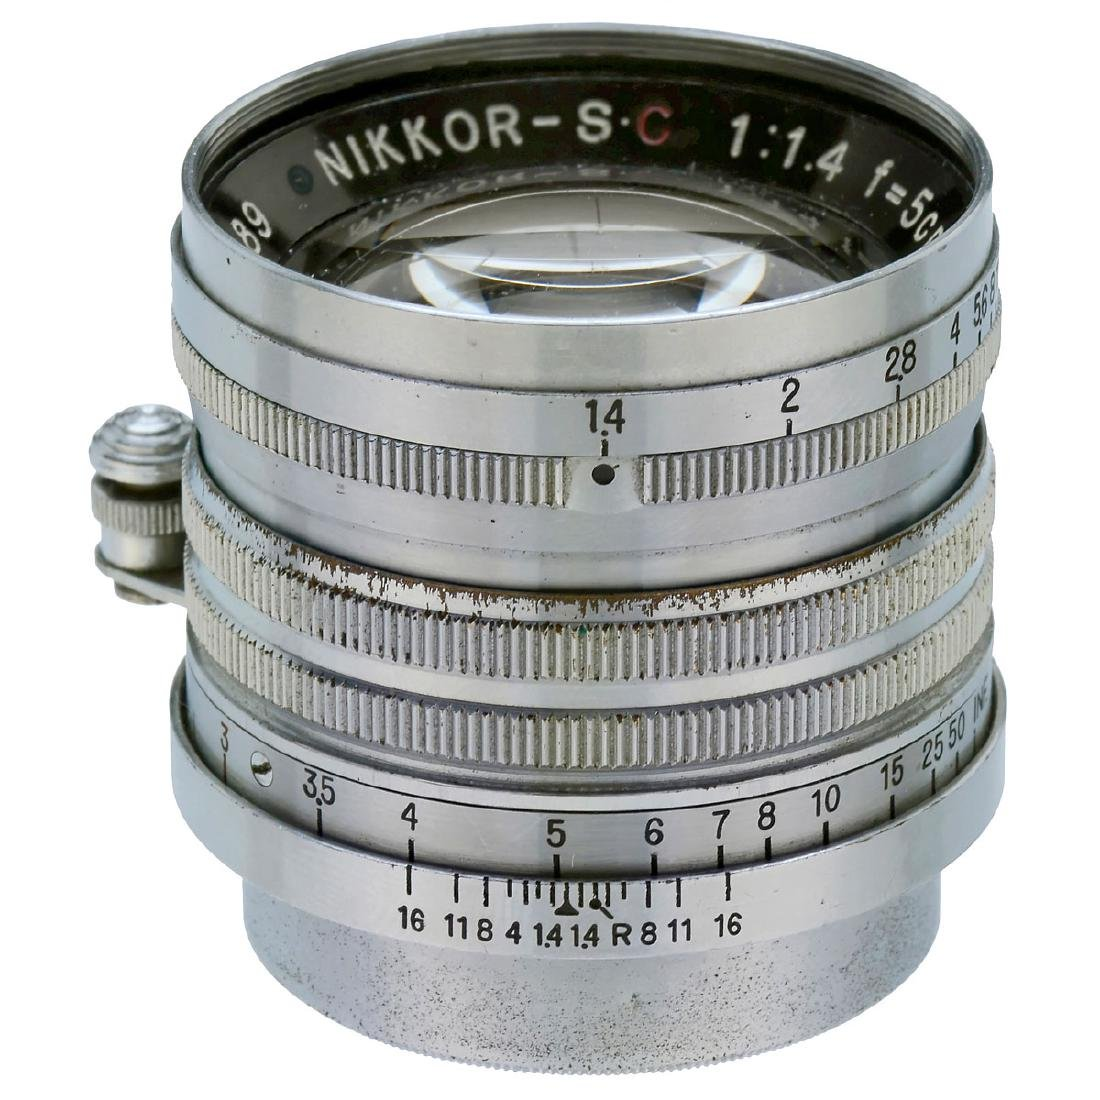 Nikkor-S.C 1,4/5 cm for Leica Screw-Mount, c. 1951